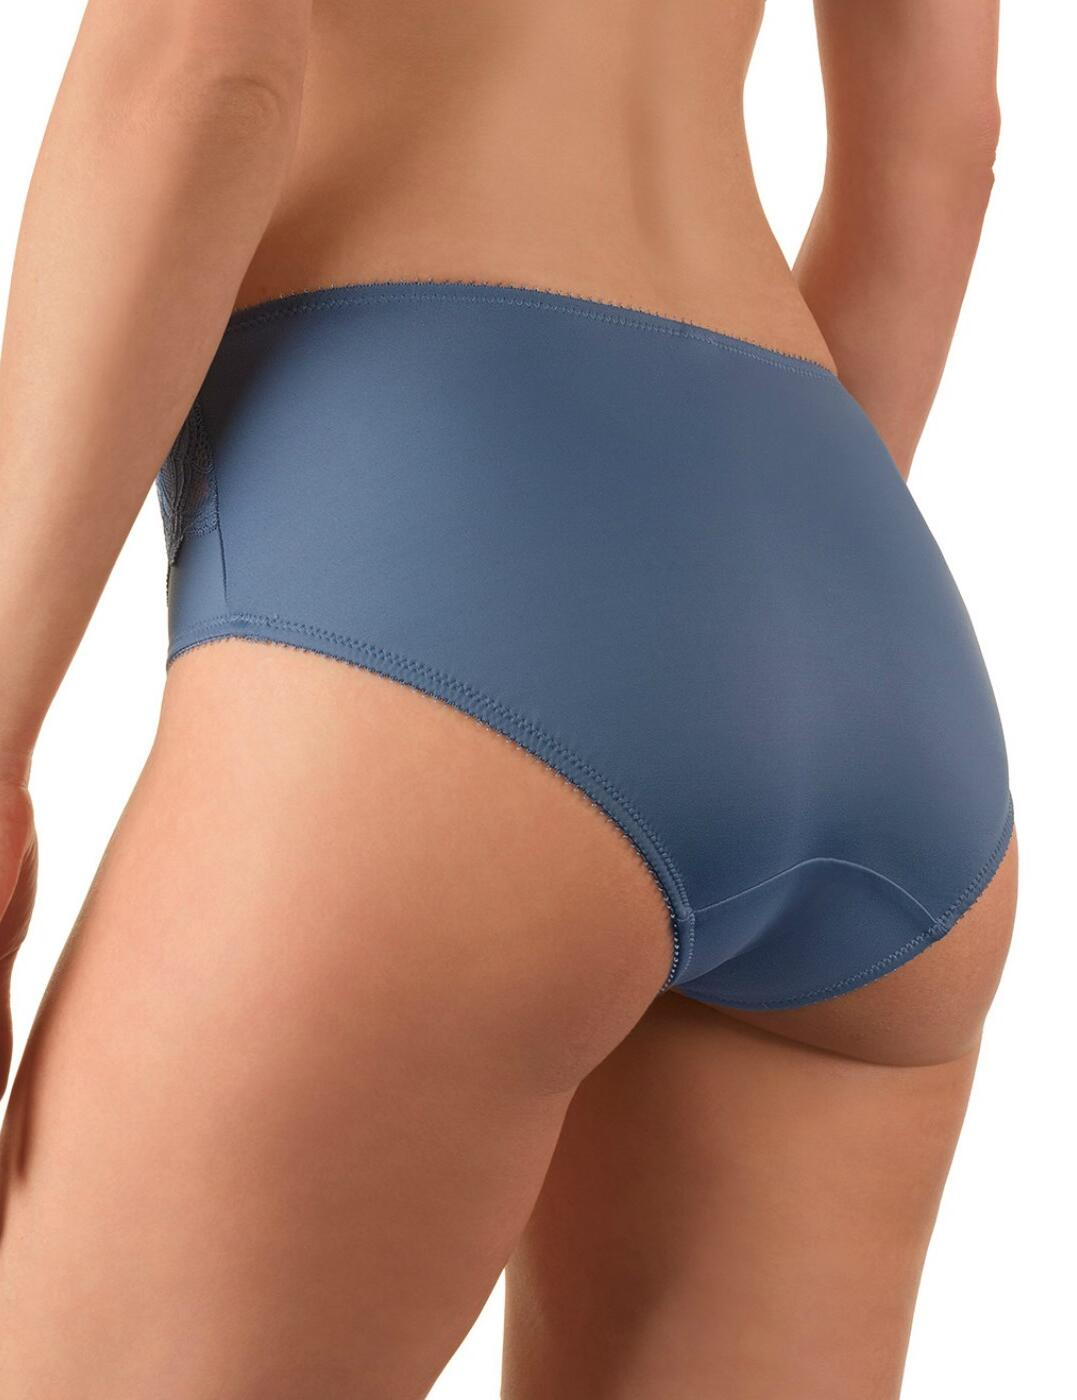 Felina Icon Brief Knickers Pant 213214 Womens Luxury Lingerie Blue Mood